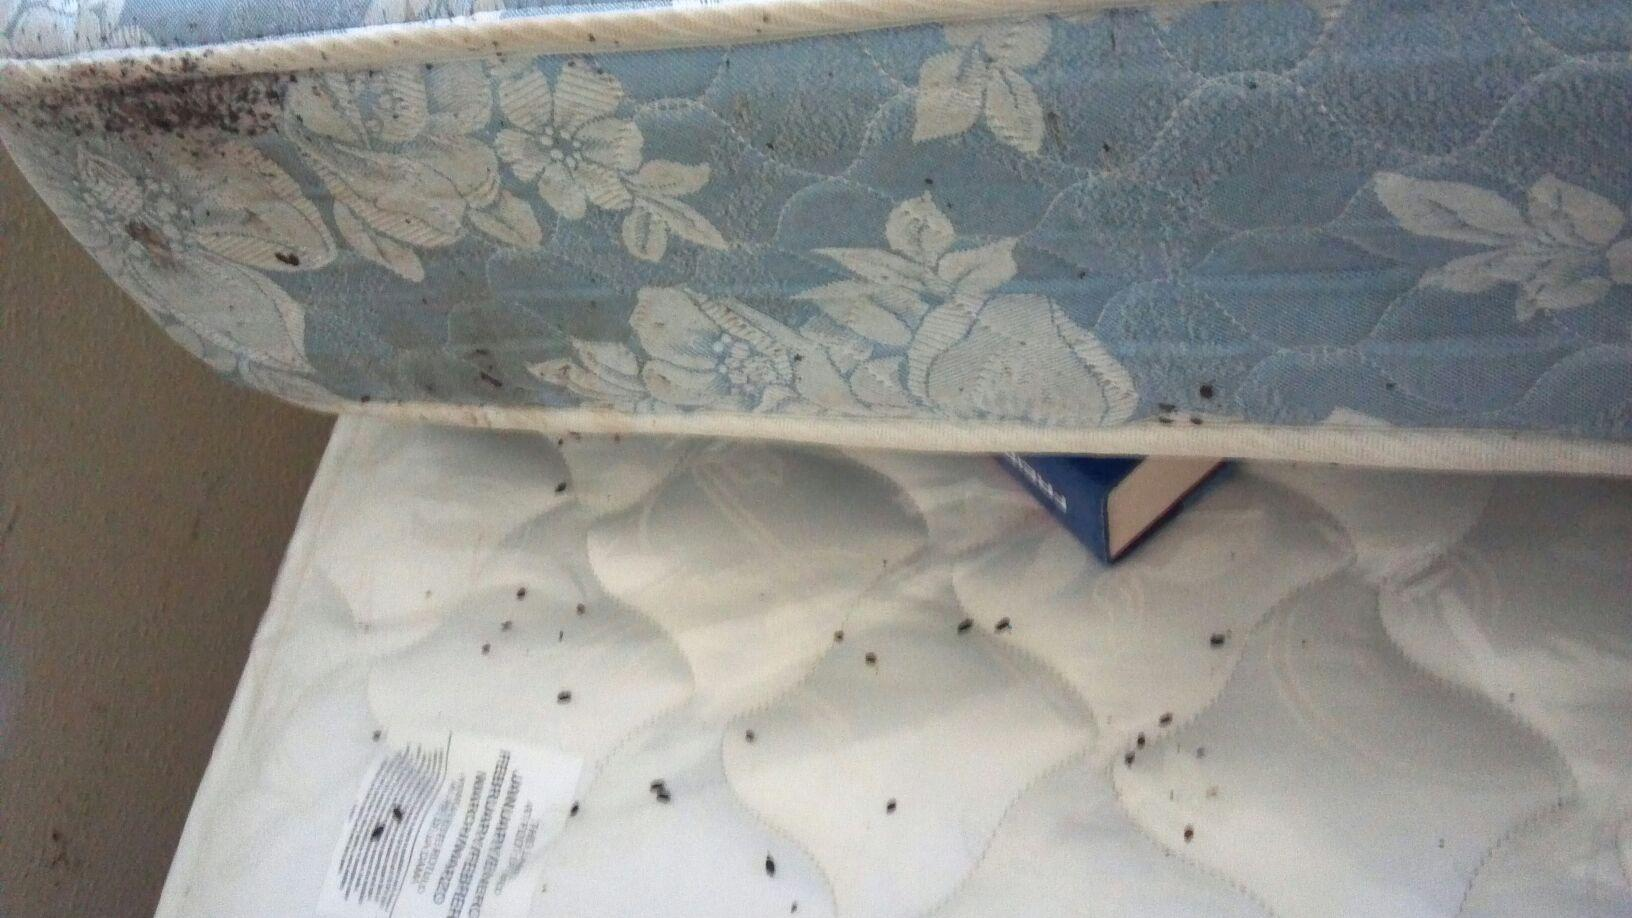 Bed Bugs In Mattress What To Look For